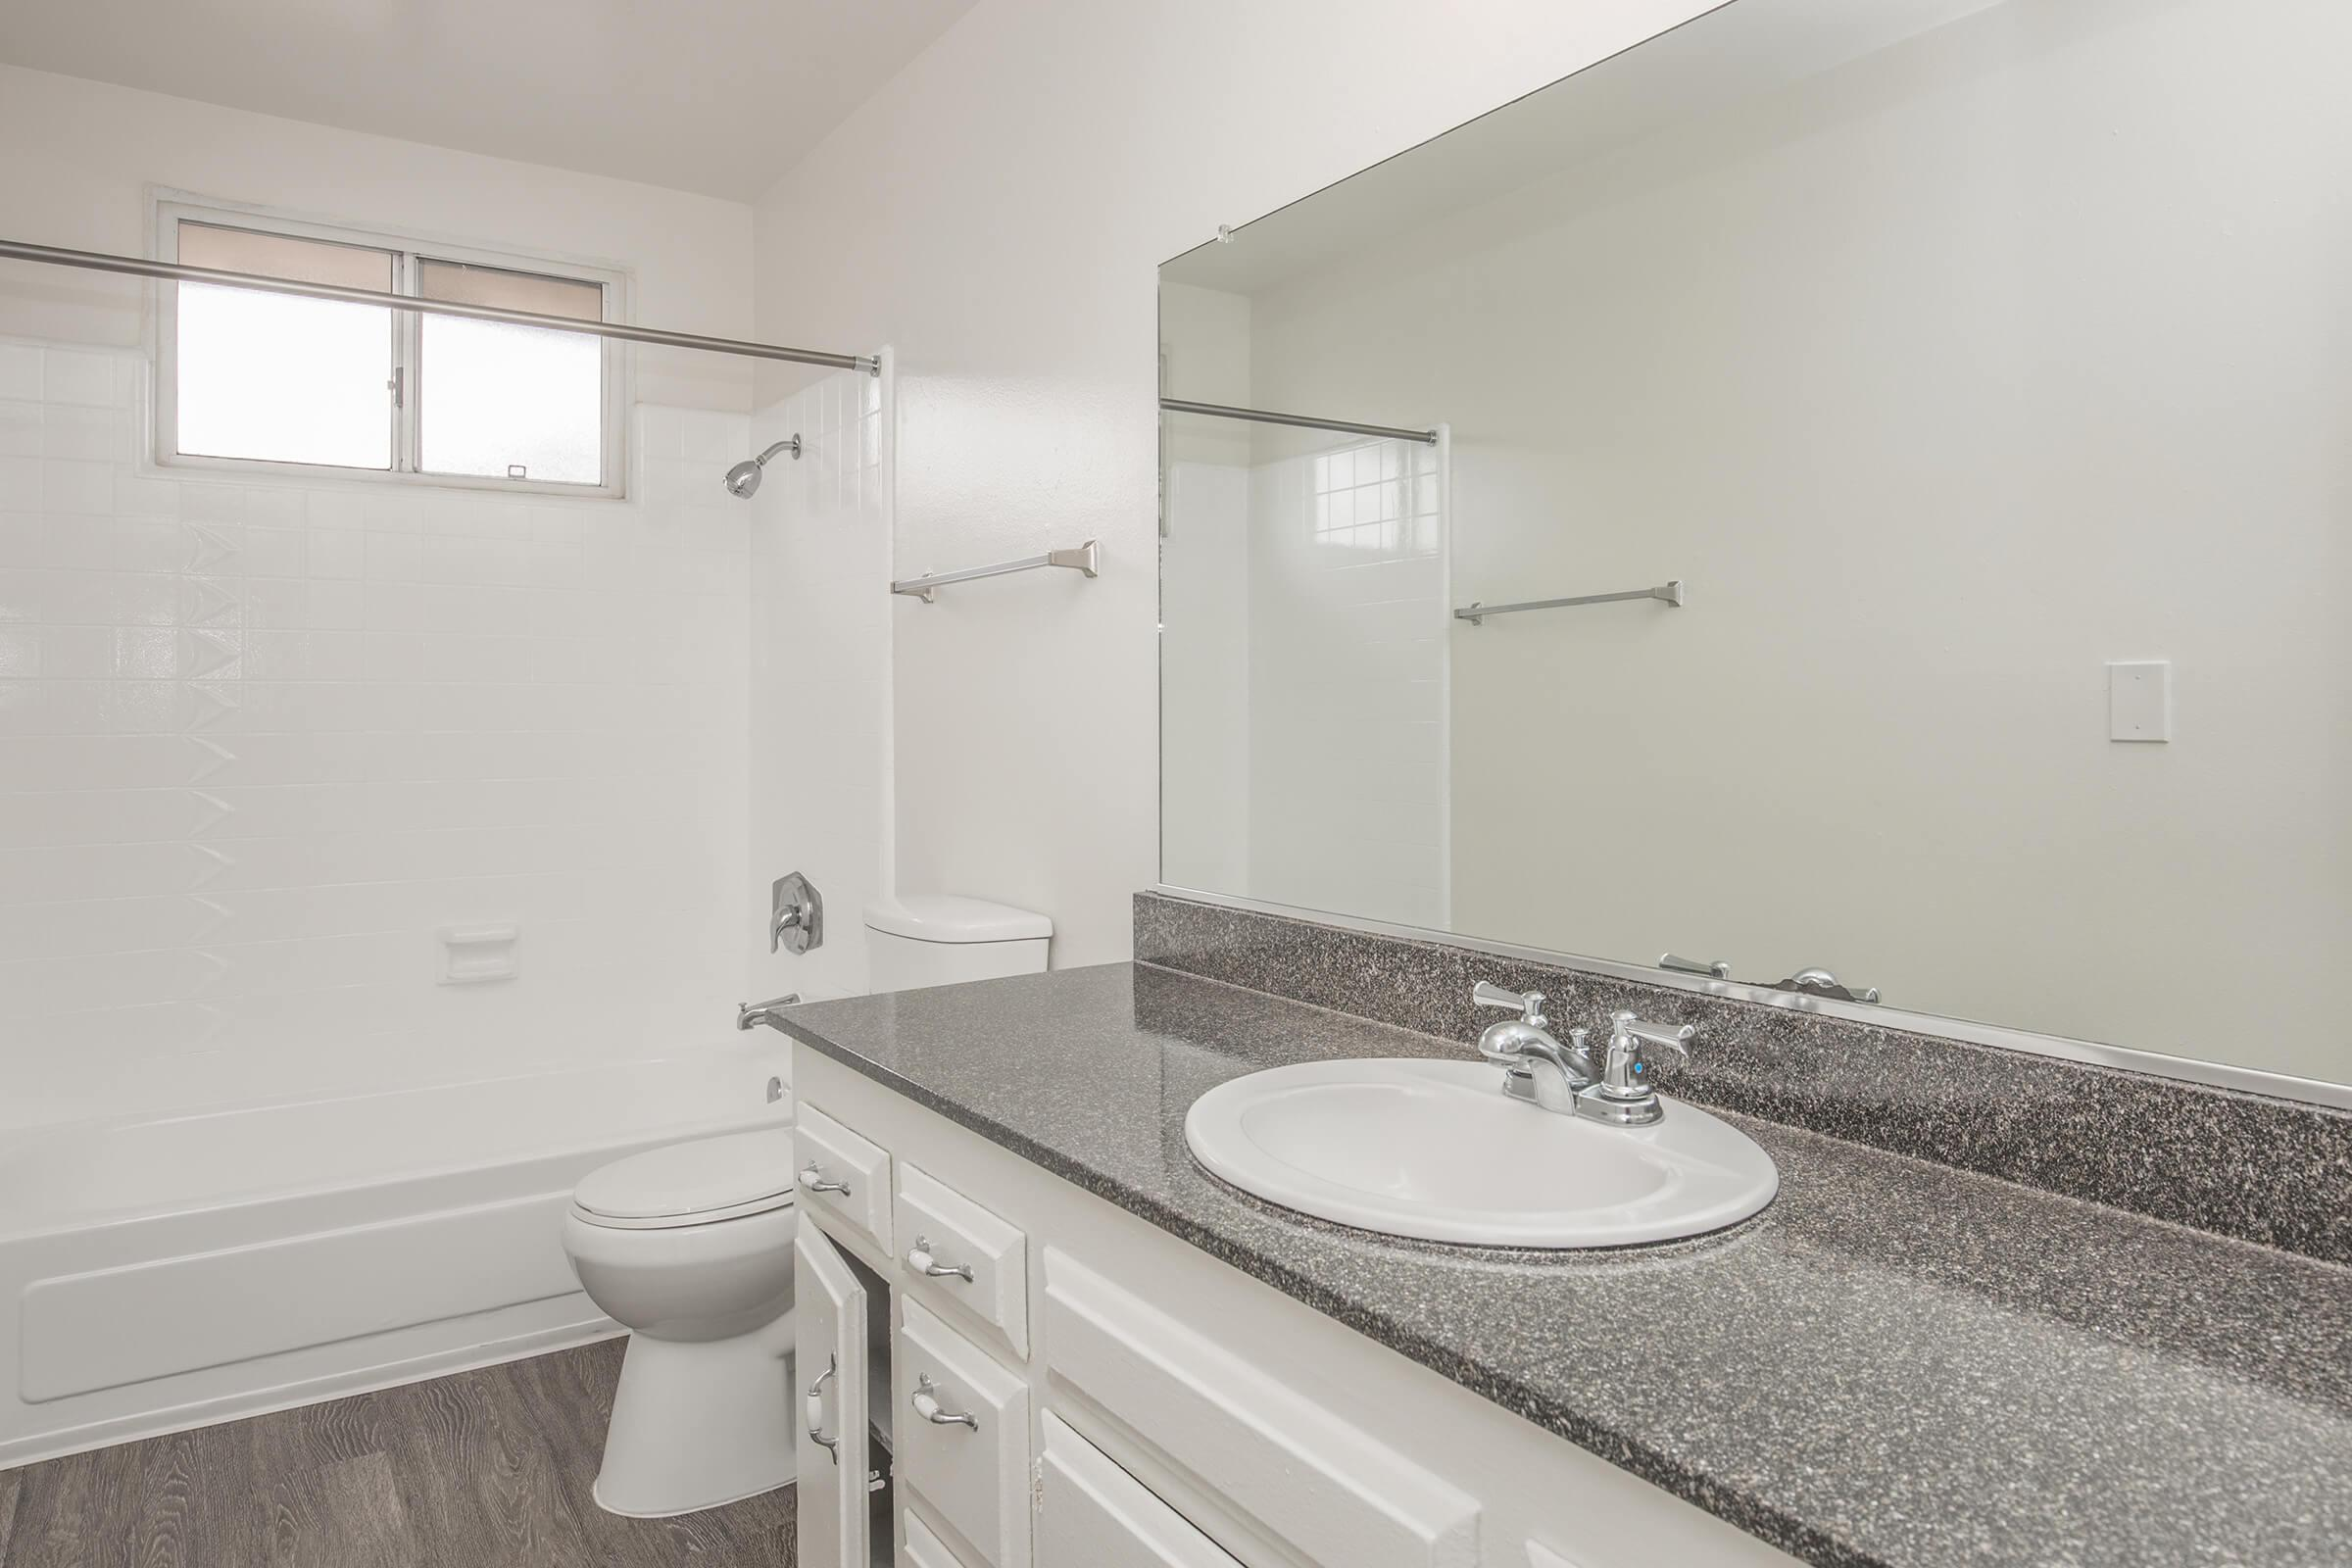 Bathroom with white cabinets and mirror